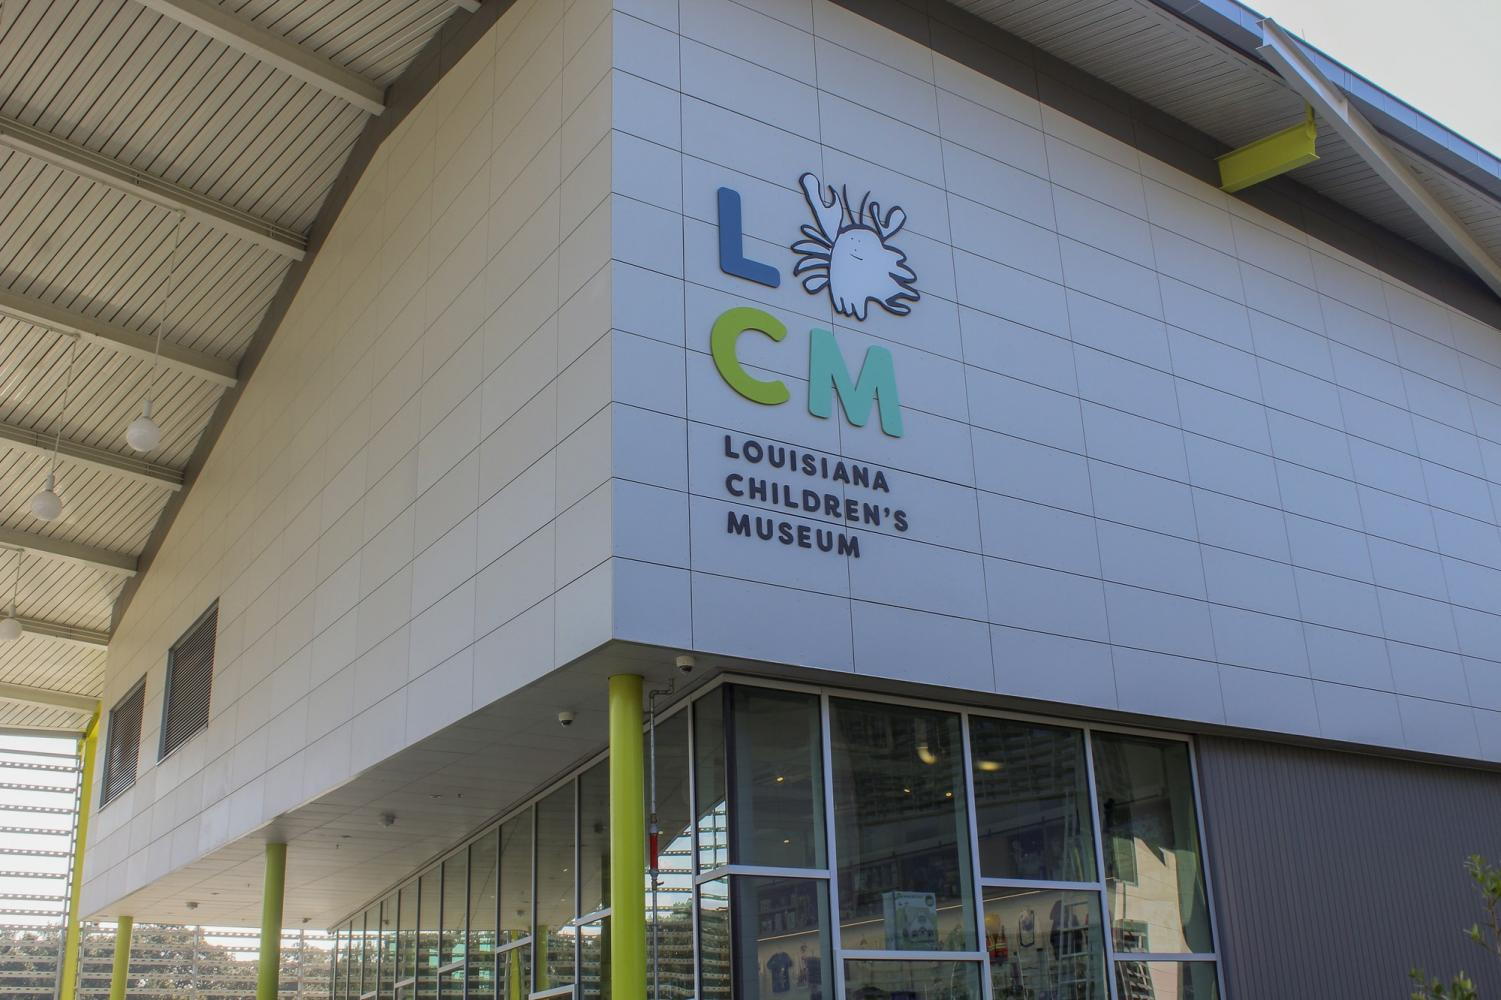 The Louisiana Children's Museum now occupies a new building in New Orleans City Park. The environmentally-conscious building cost $47.5 million.